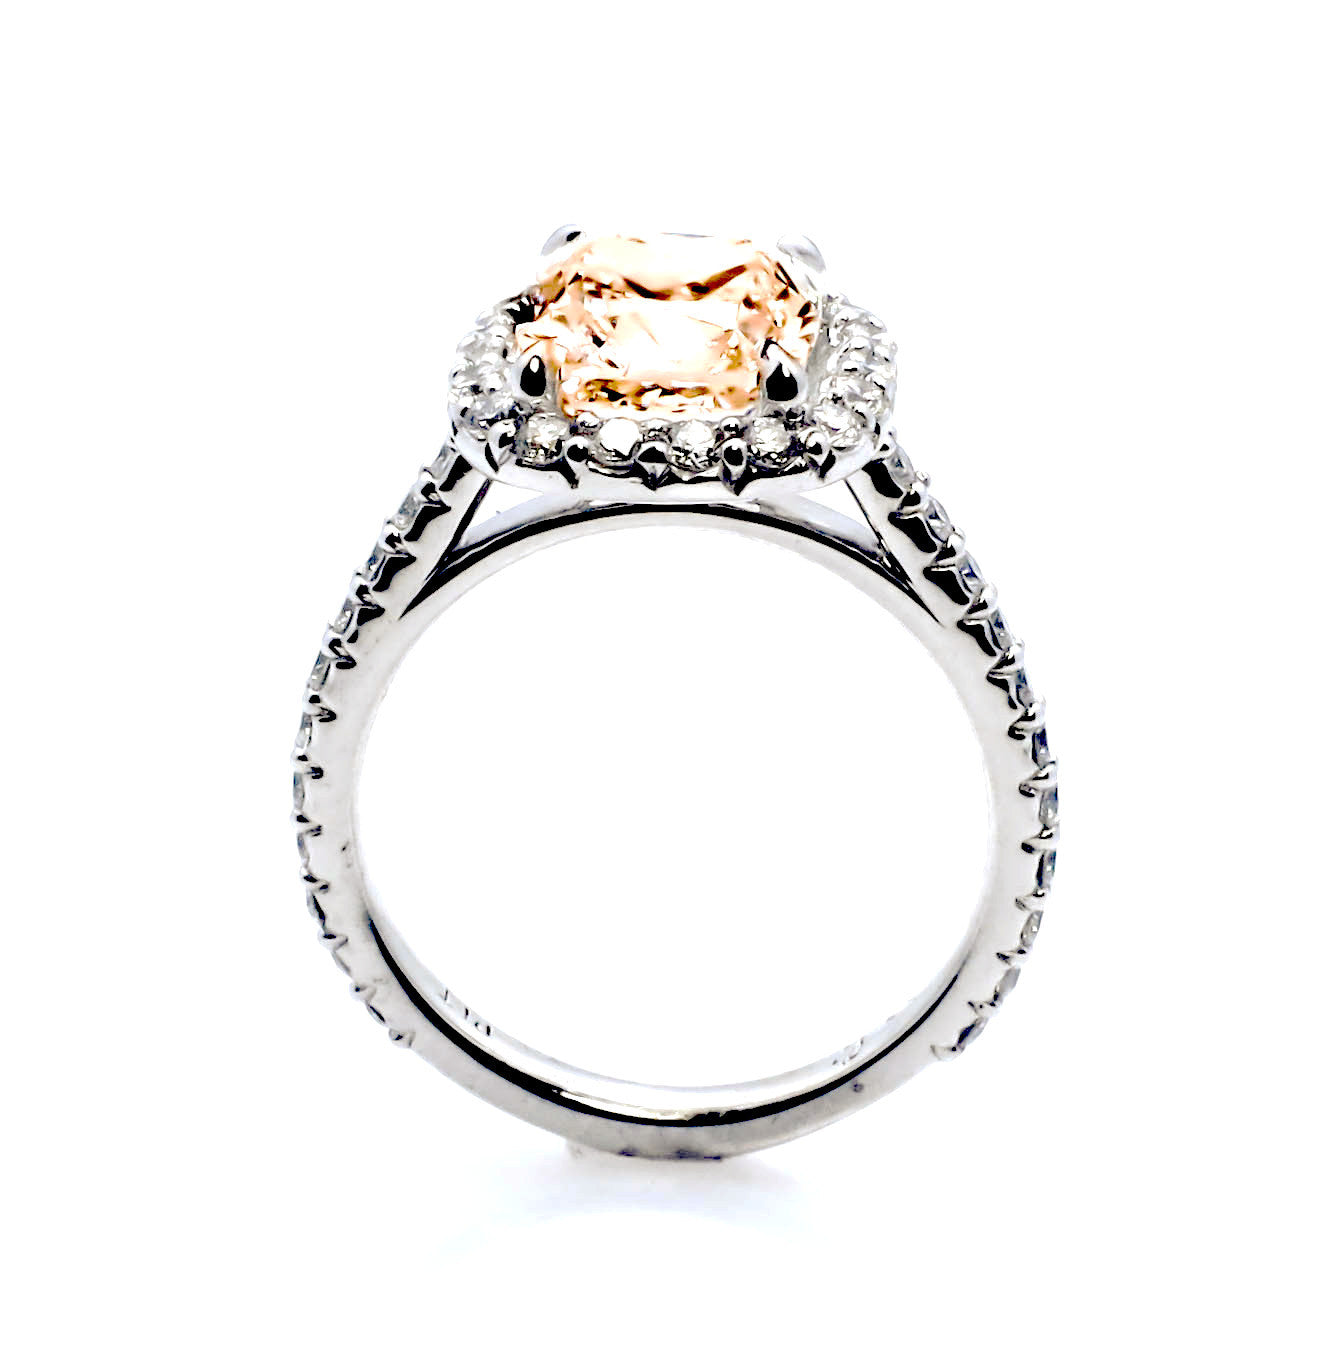 2 Carat Cushion Cut Halo Morganite And Diamond Engagement Ring, Anniversary Ring - MGV2HER